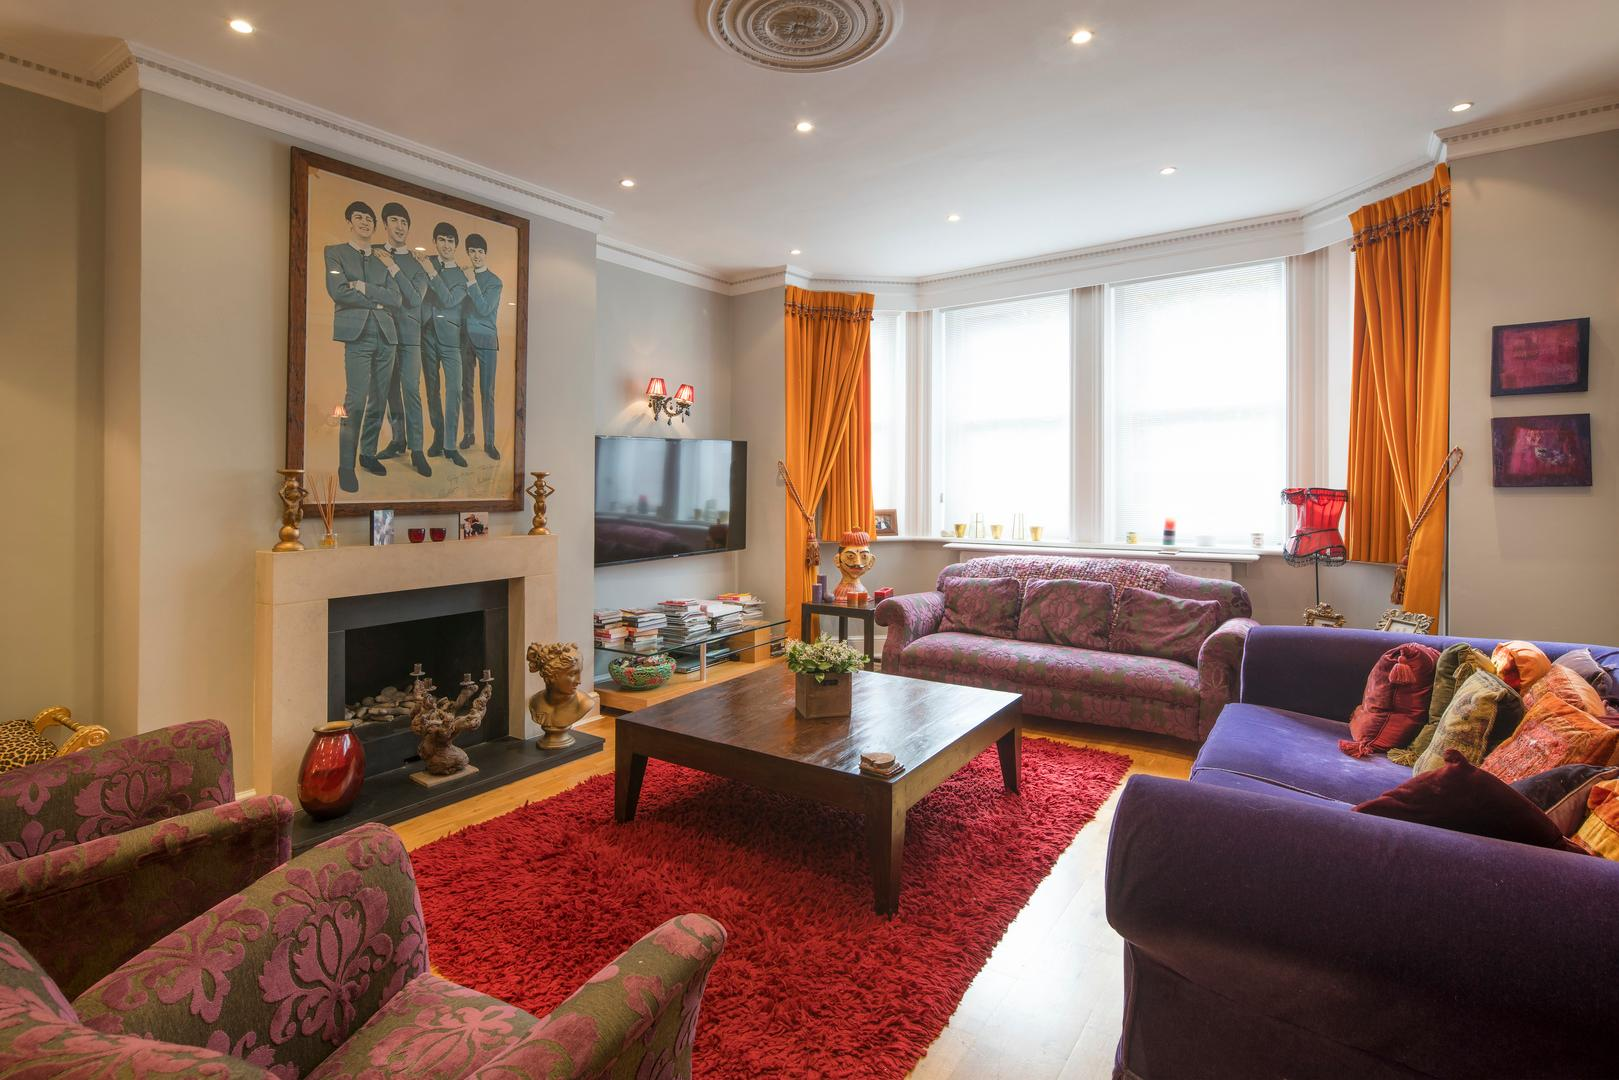 Property Image 1 - Impressive Hampstead Home with Stylish Interior by Tube